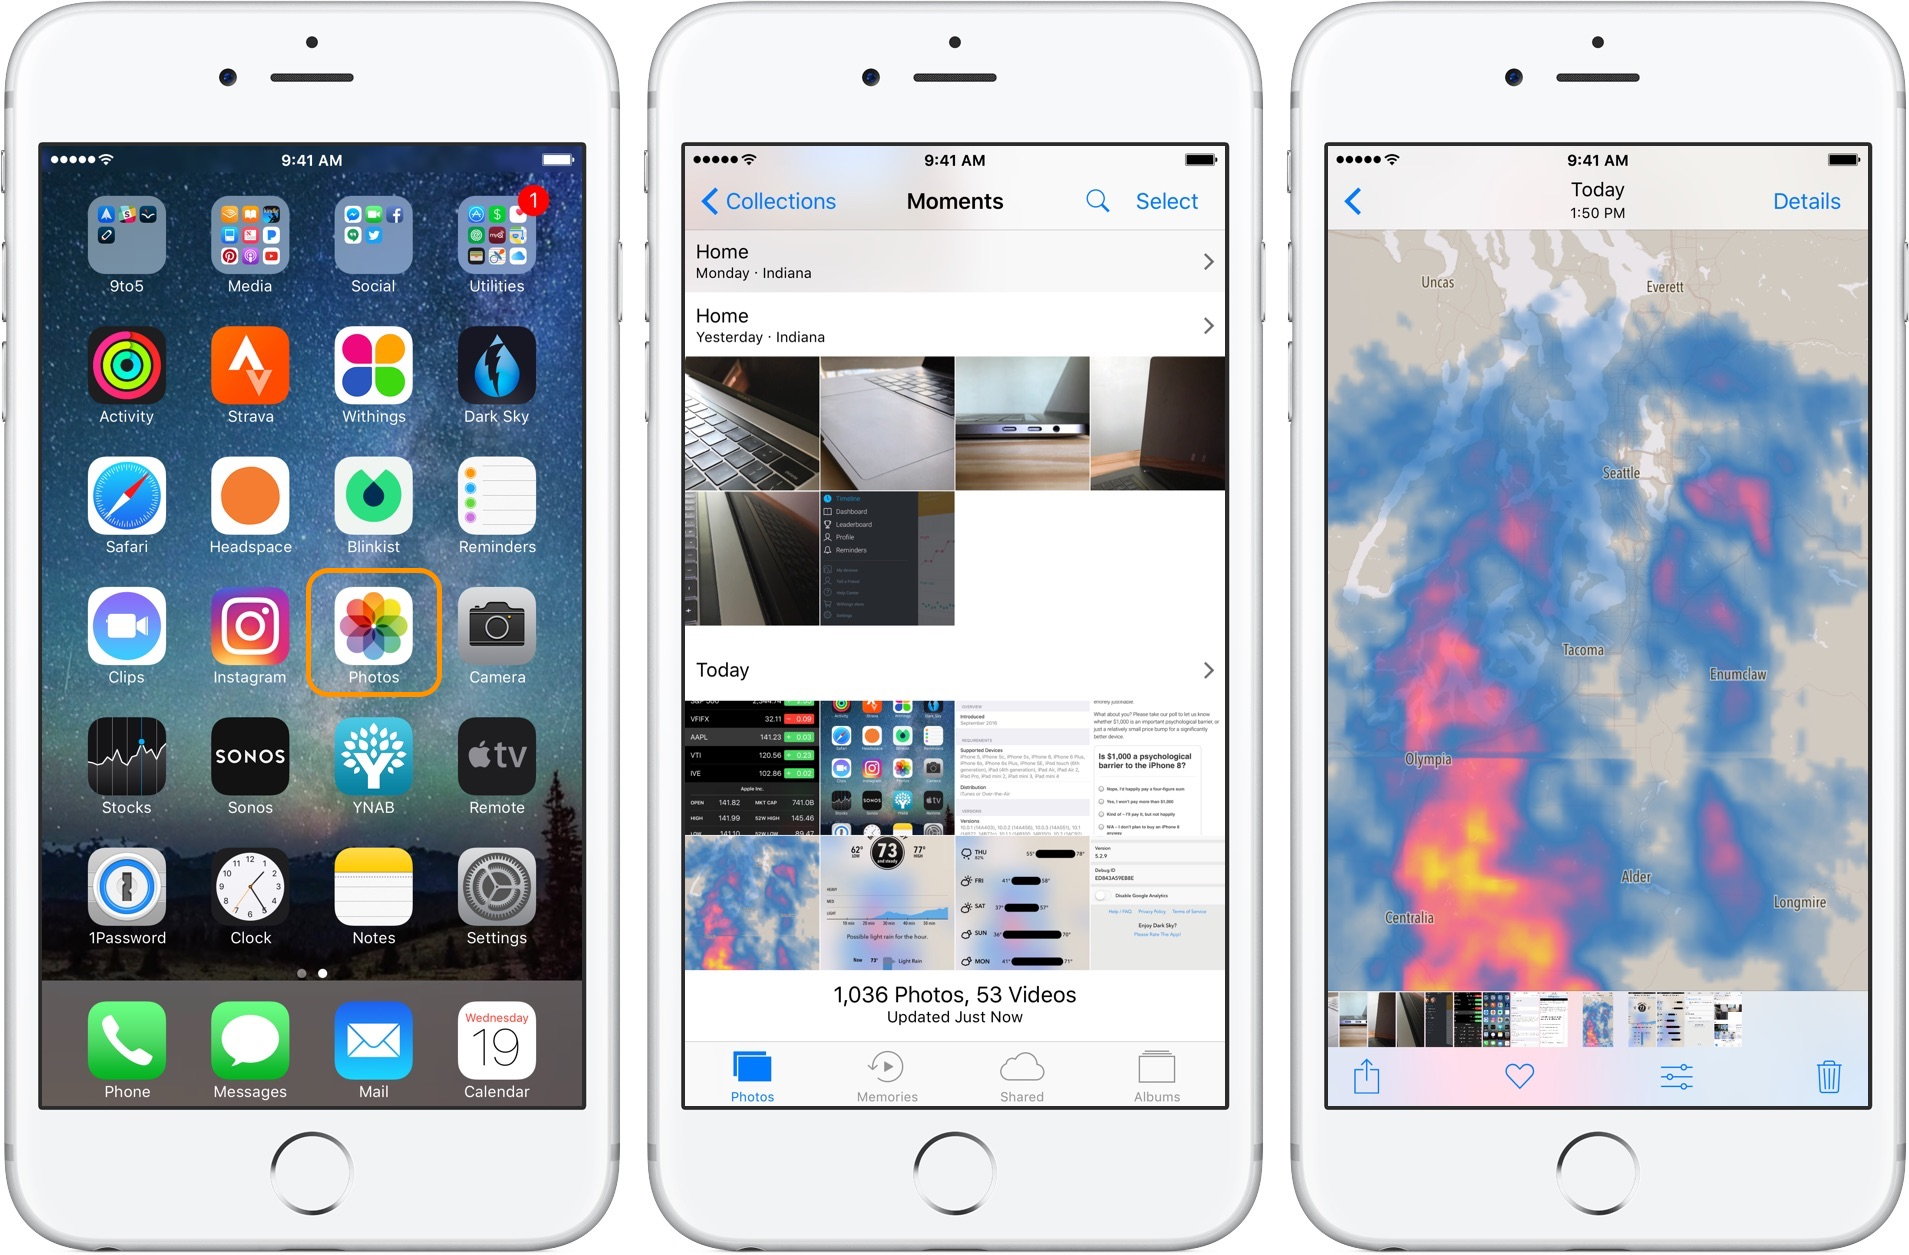 Image showing the Photos application on the iPhone Home screen and the screenshots in Photos